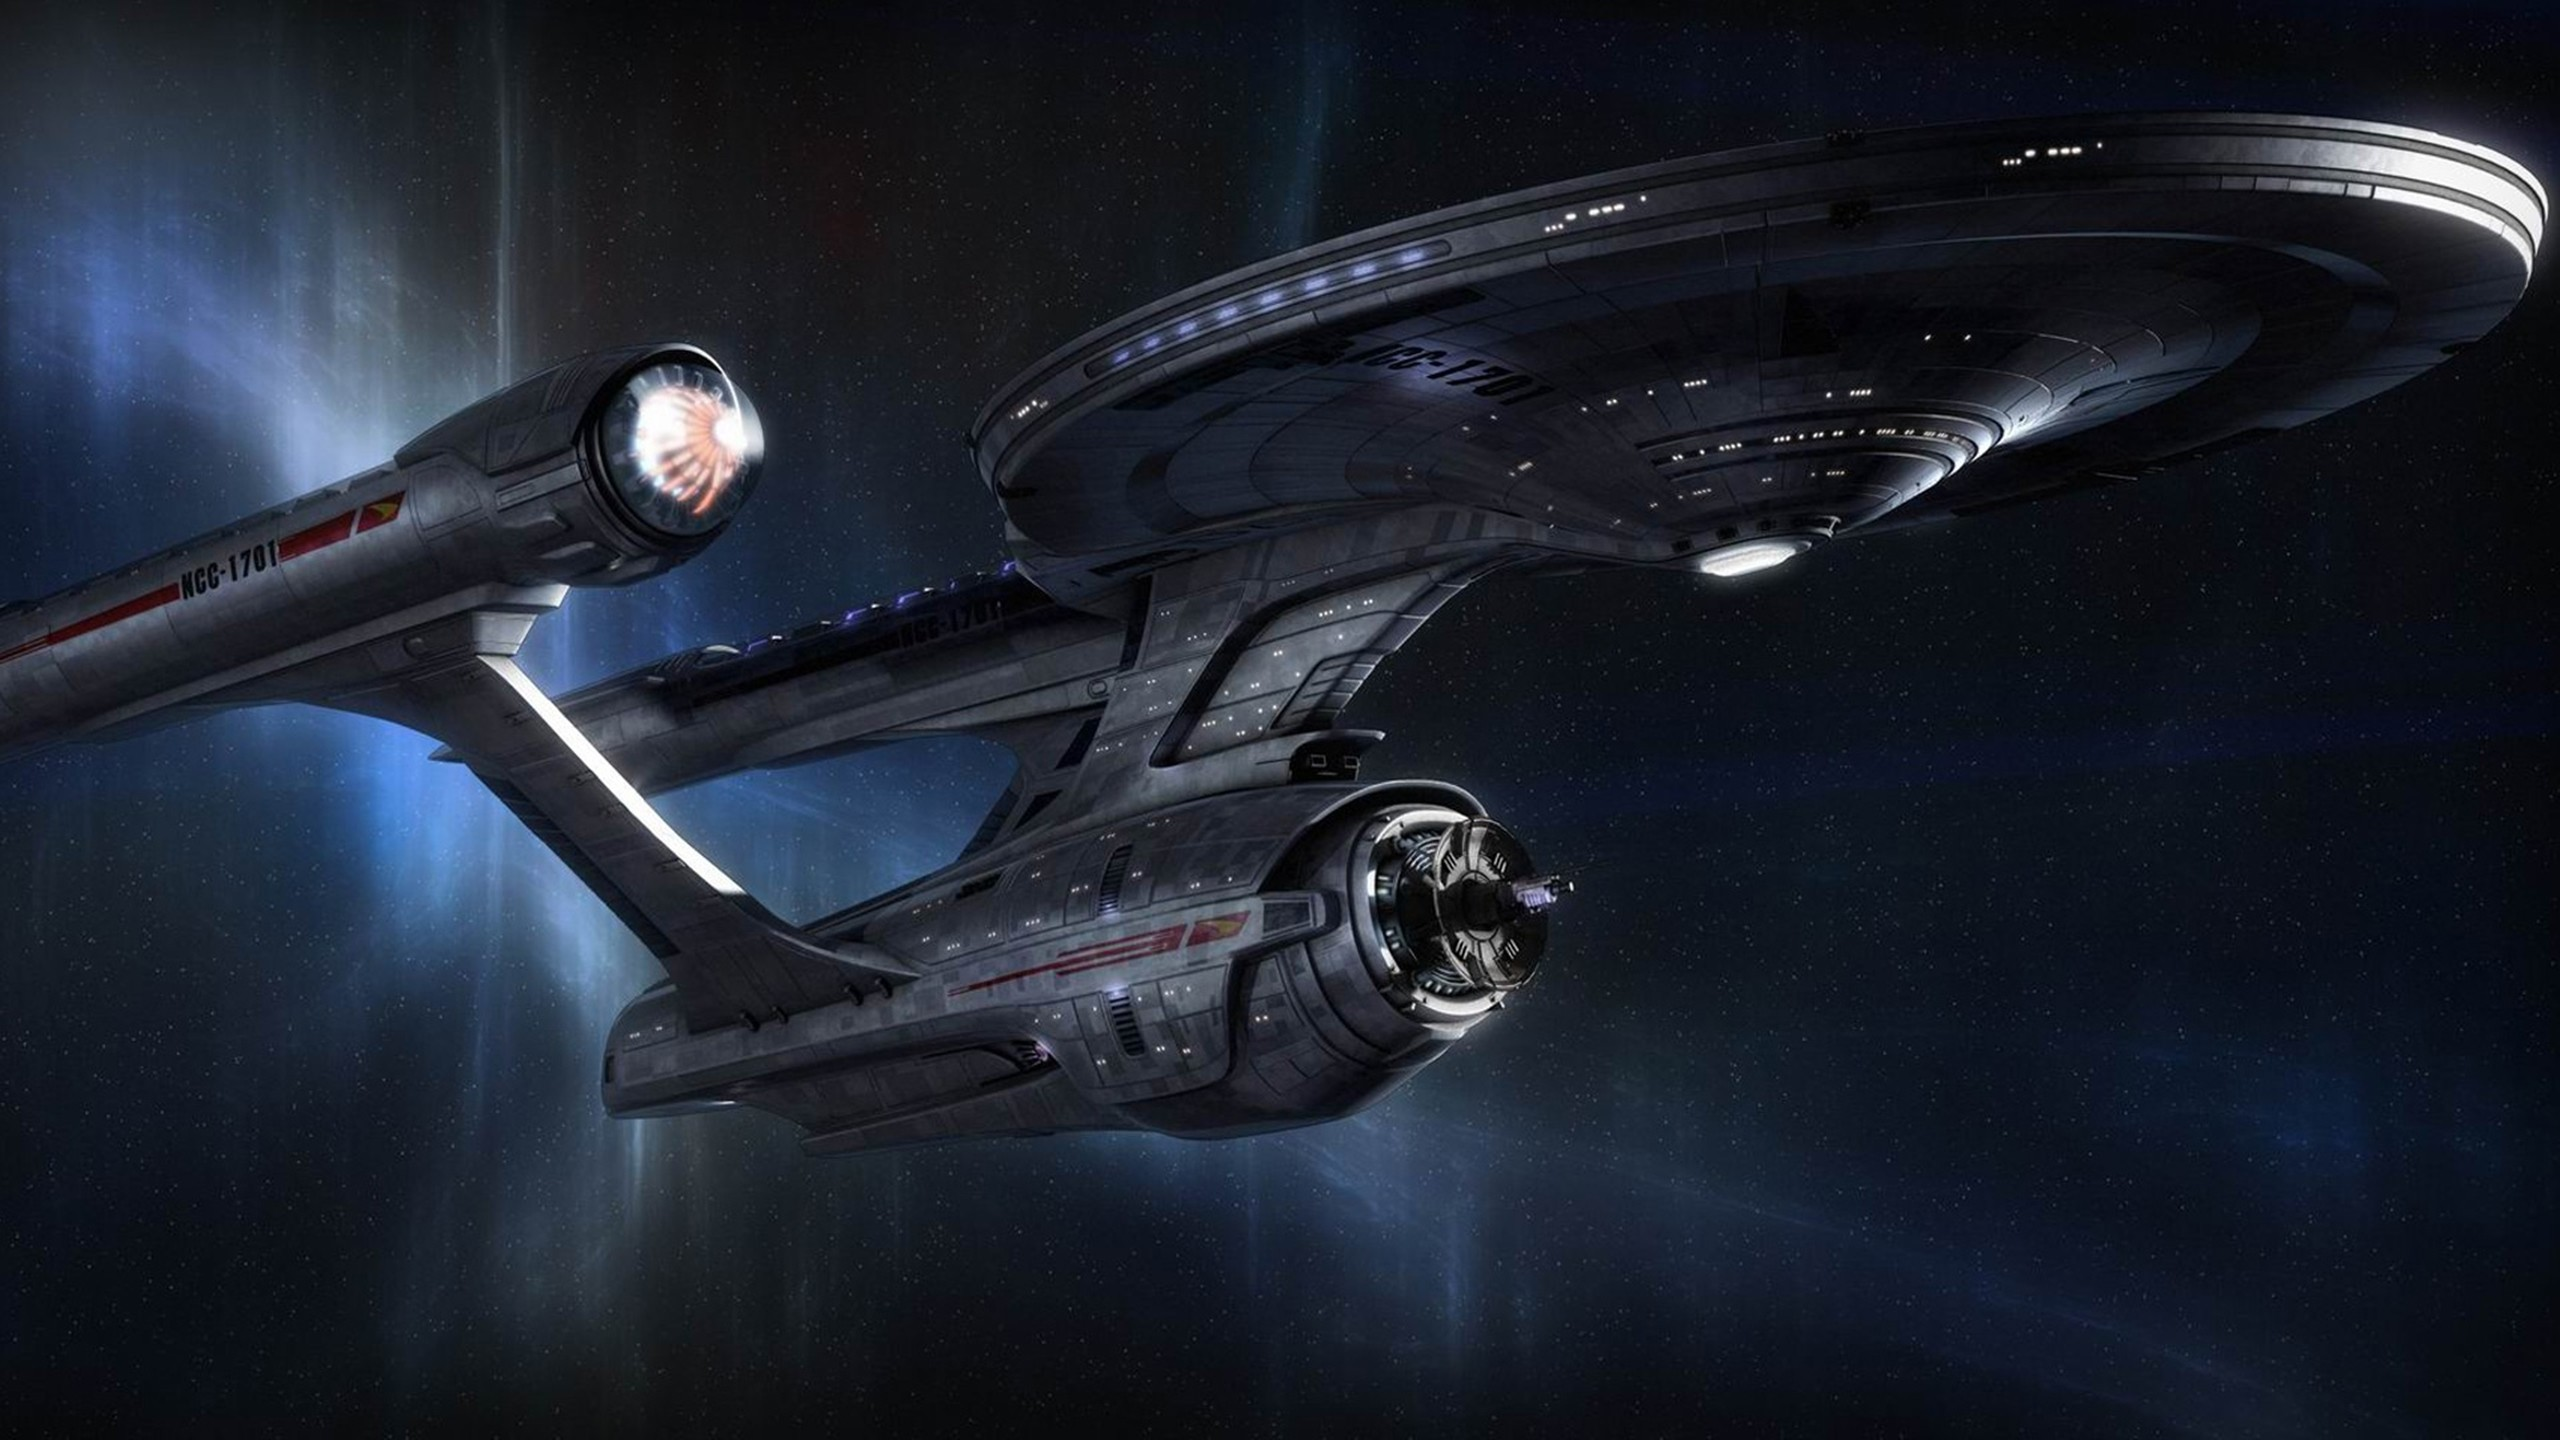 Explore More Wallpapers in the Star Trek Subcategory!